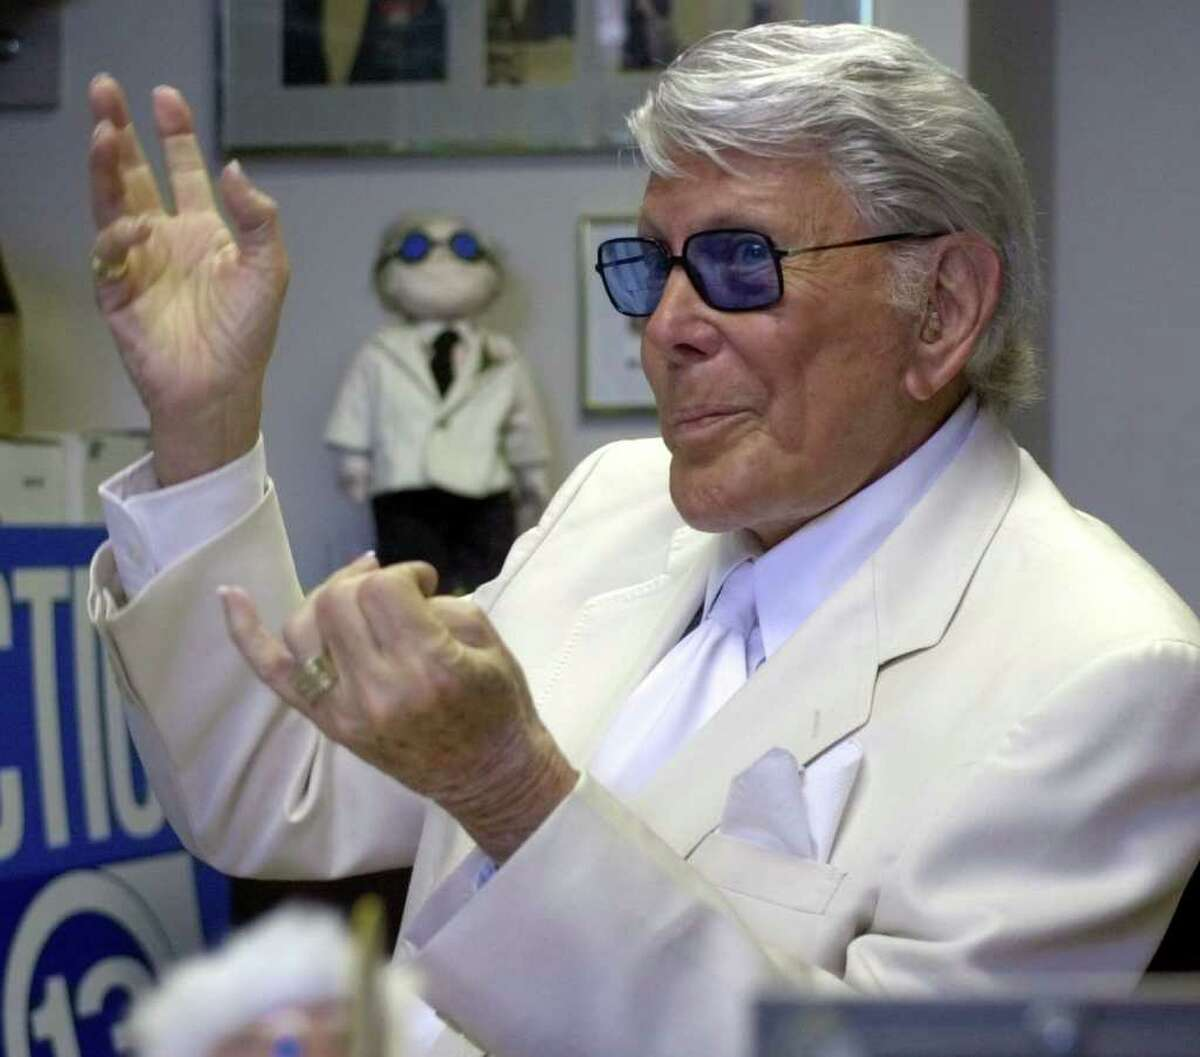 """When a Texas sheriff broke Marvin Zindler's ribs after he exposed a brothel Houston television reporter and personality Marvin Zindler had a run-in with former Fayette County Sheriff T.J. Flournoy in 1973, 18 months after his reporting exposed the infamous brothel in La Grange dubbed The Chicken Ranch. Reporter Larry L. King later wrote about the dispute for the Washington Post. """"The sheriff pulled the younger man from his car, flang him around a bit, ripped off his silver hairpiece and stomped it, and in general made the newsman feel unwelcome three broken ribs worth,"""" King wrote."""